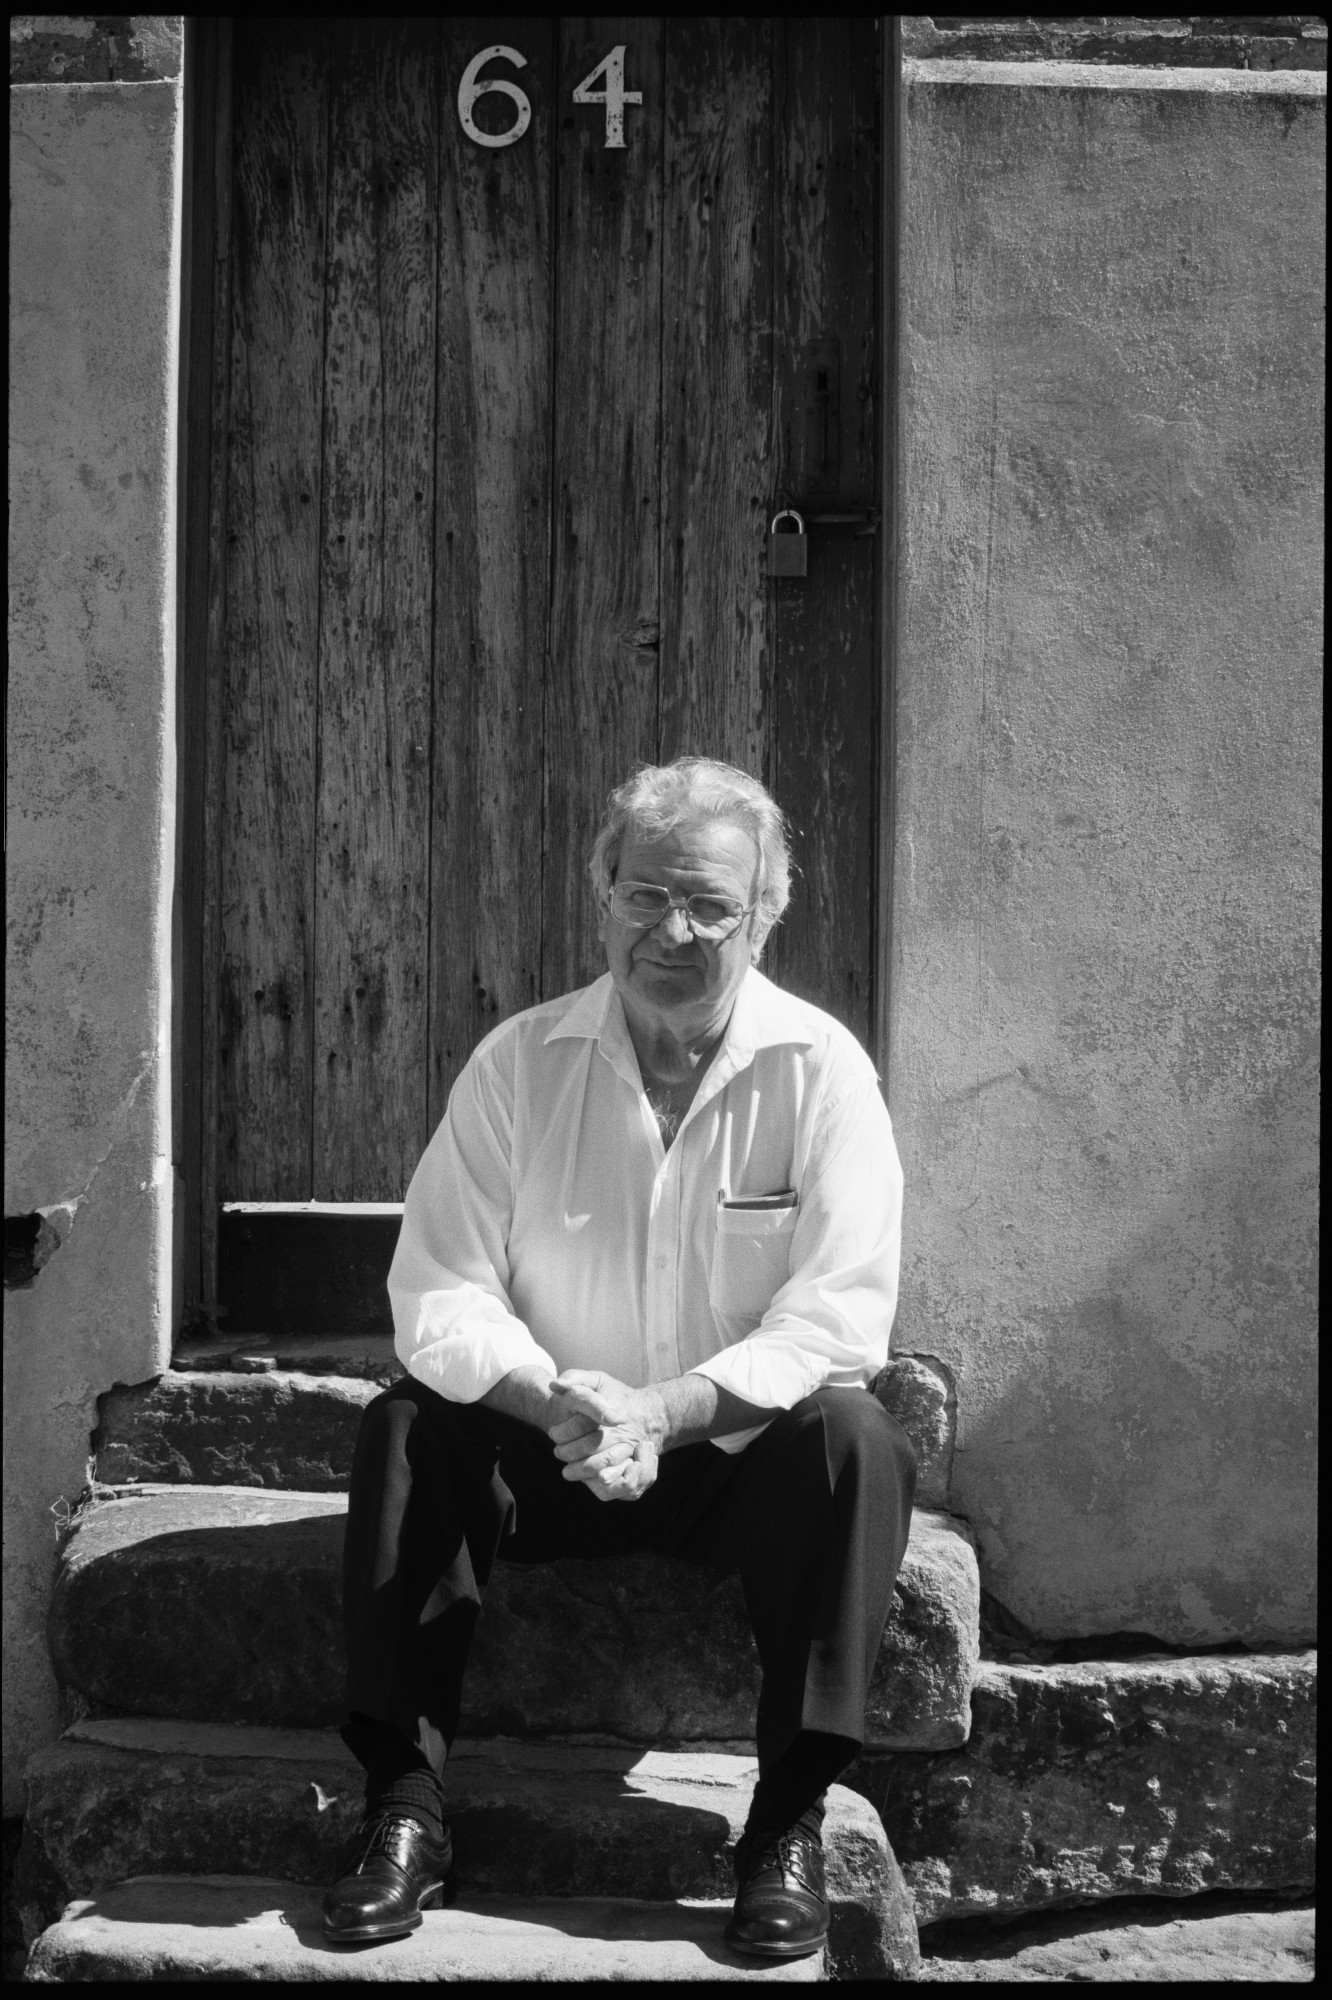 Black and white photo of man seated on step.